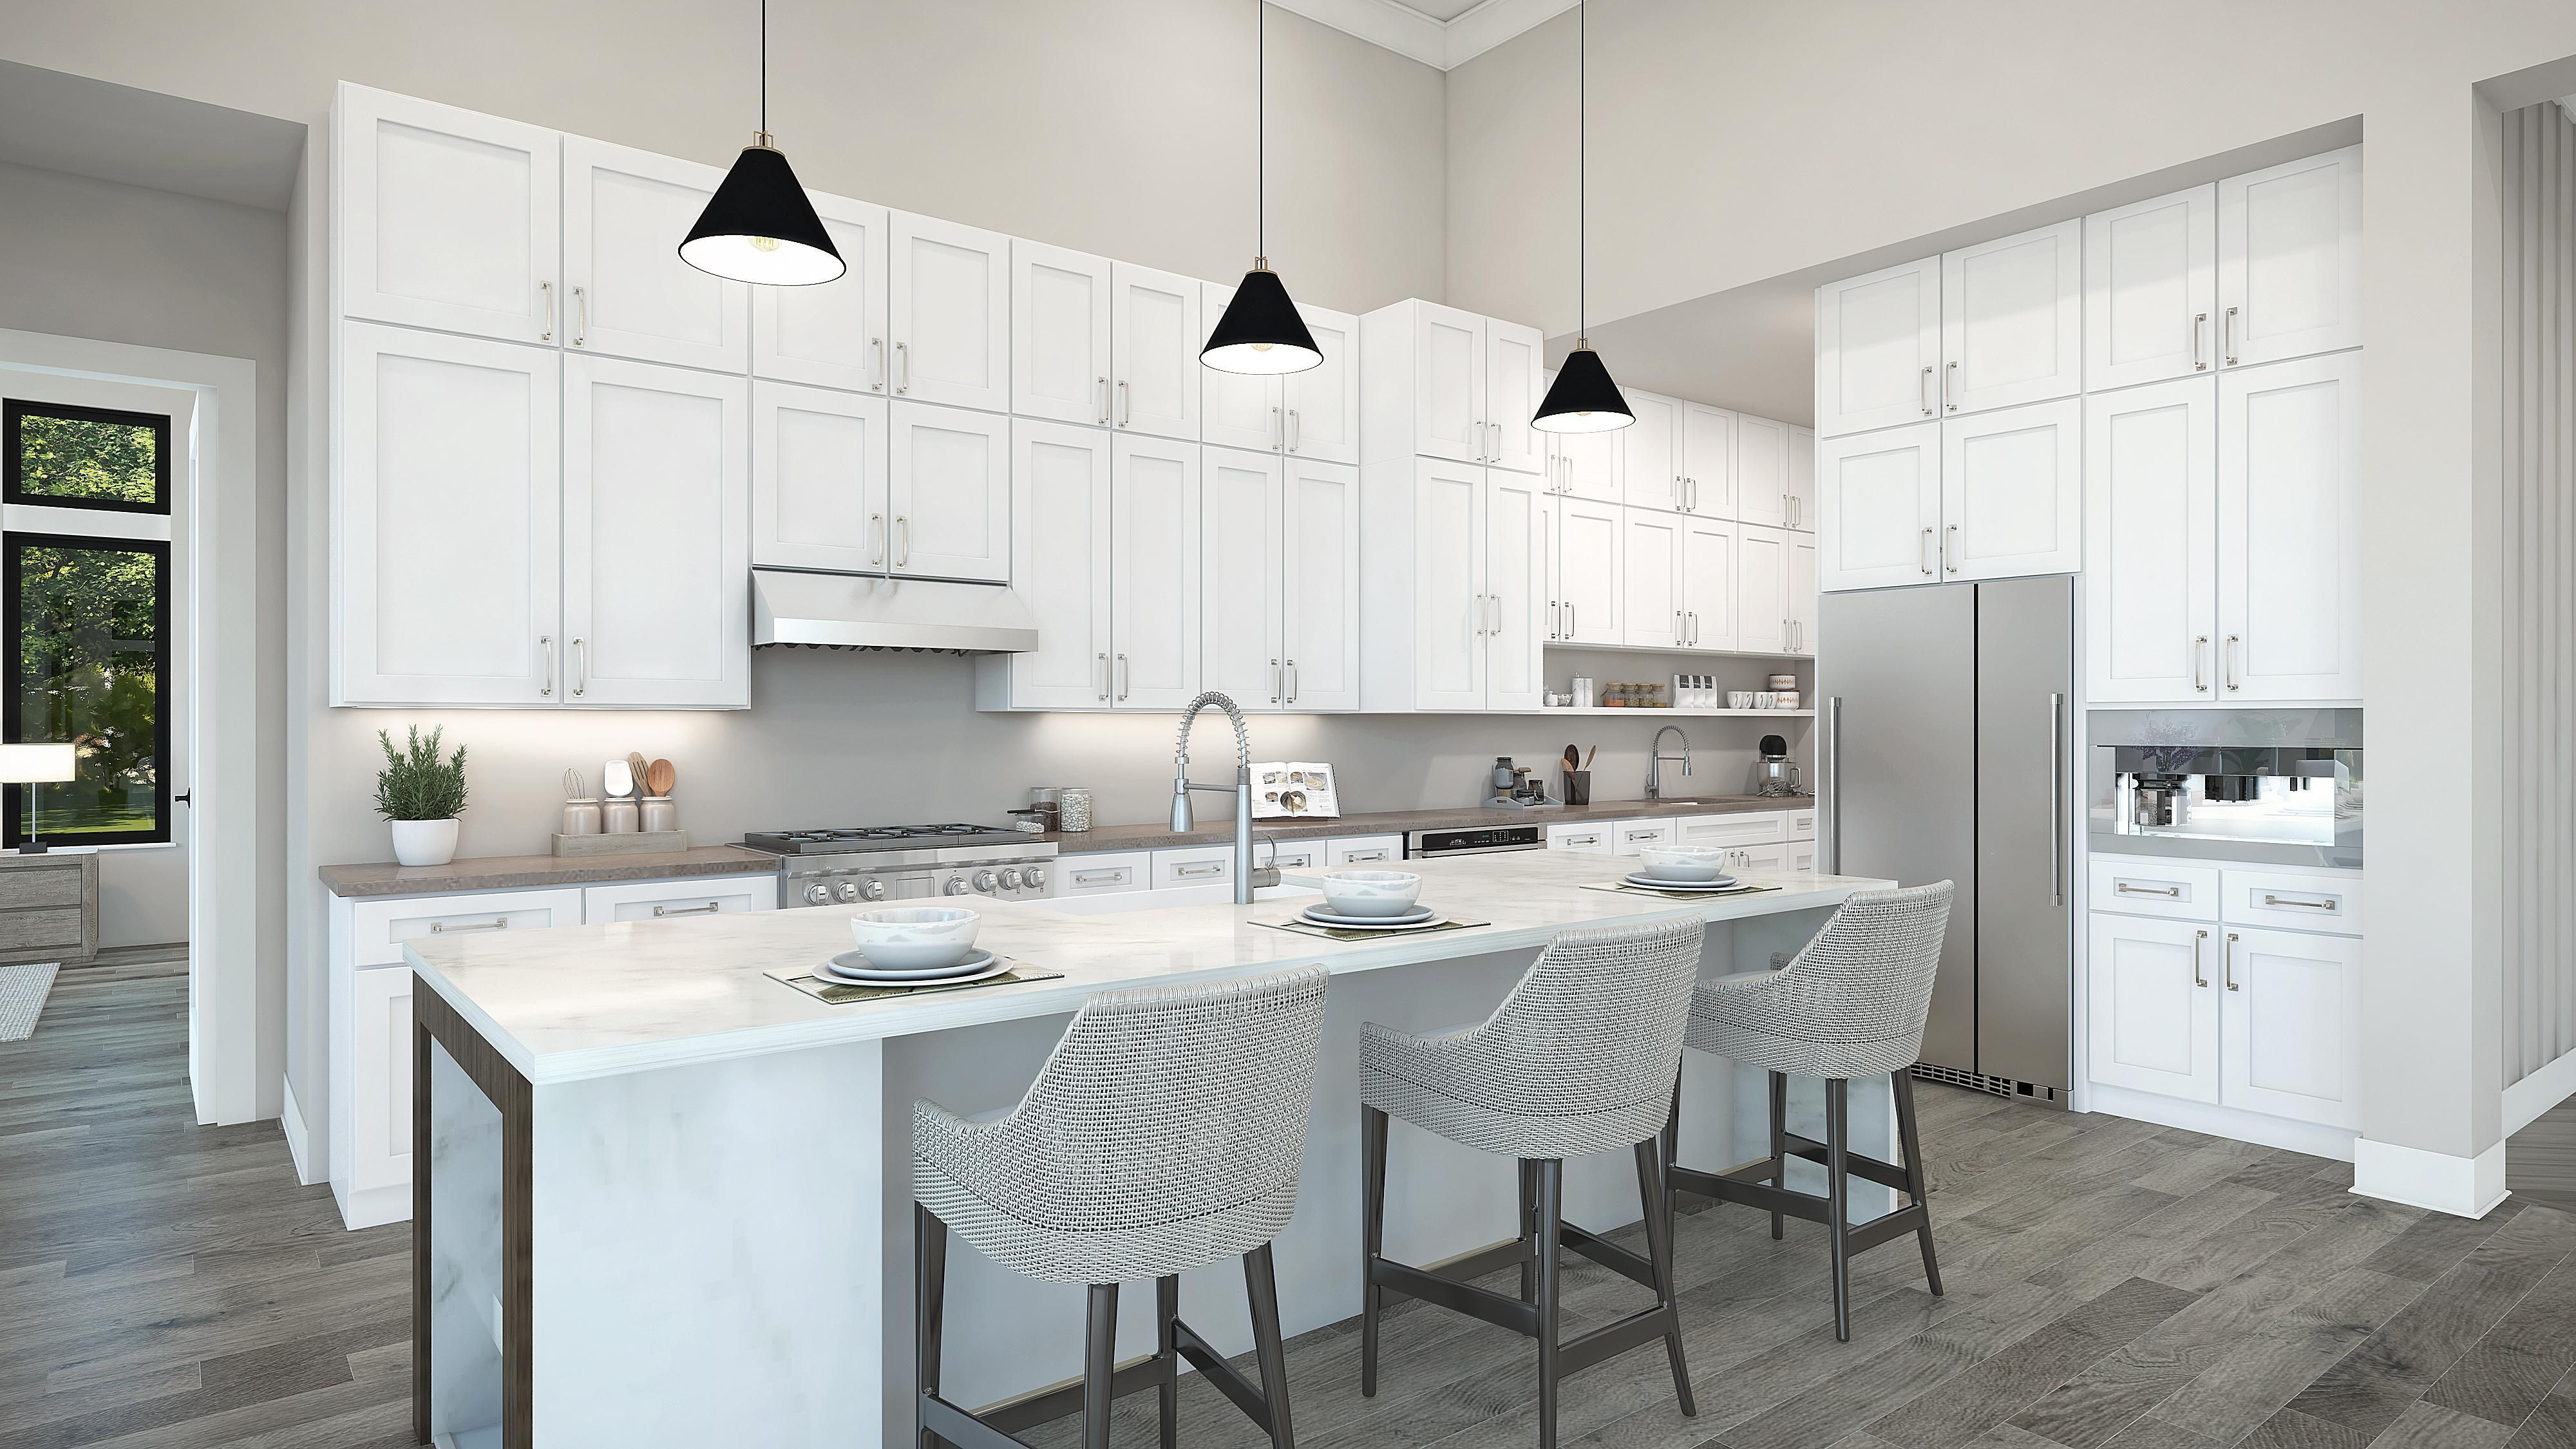 Kitchen featured in the Plan 3-C By Copper Valley  in Stockton-Lodi, CA